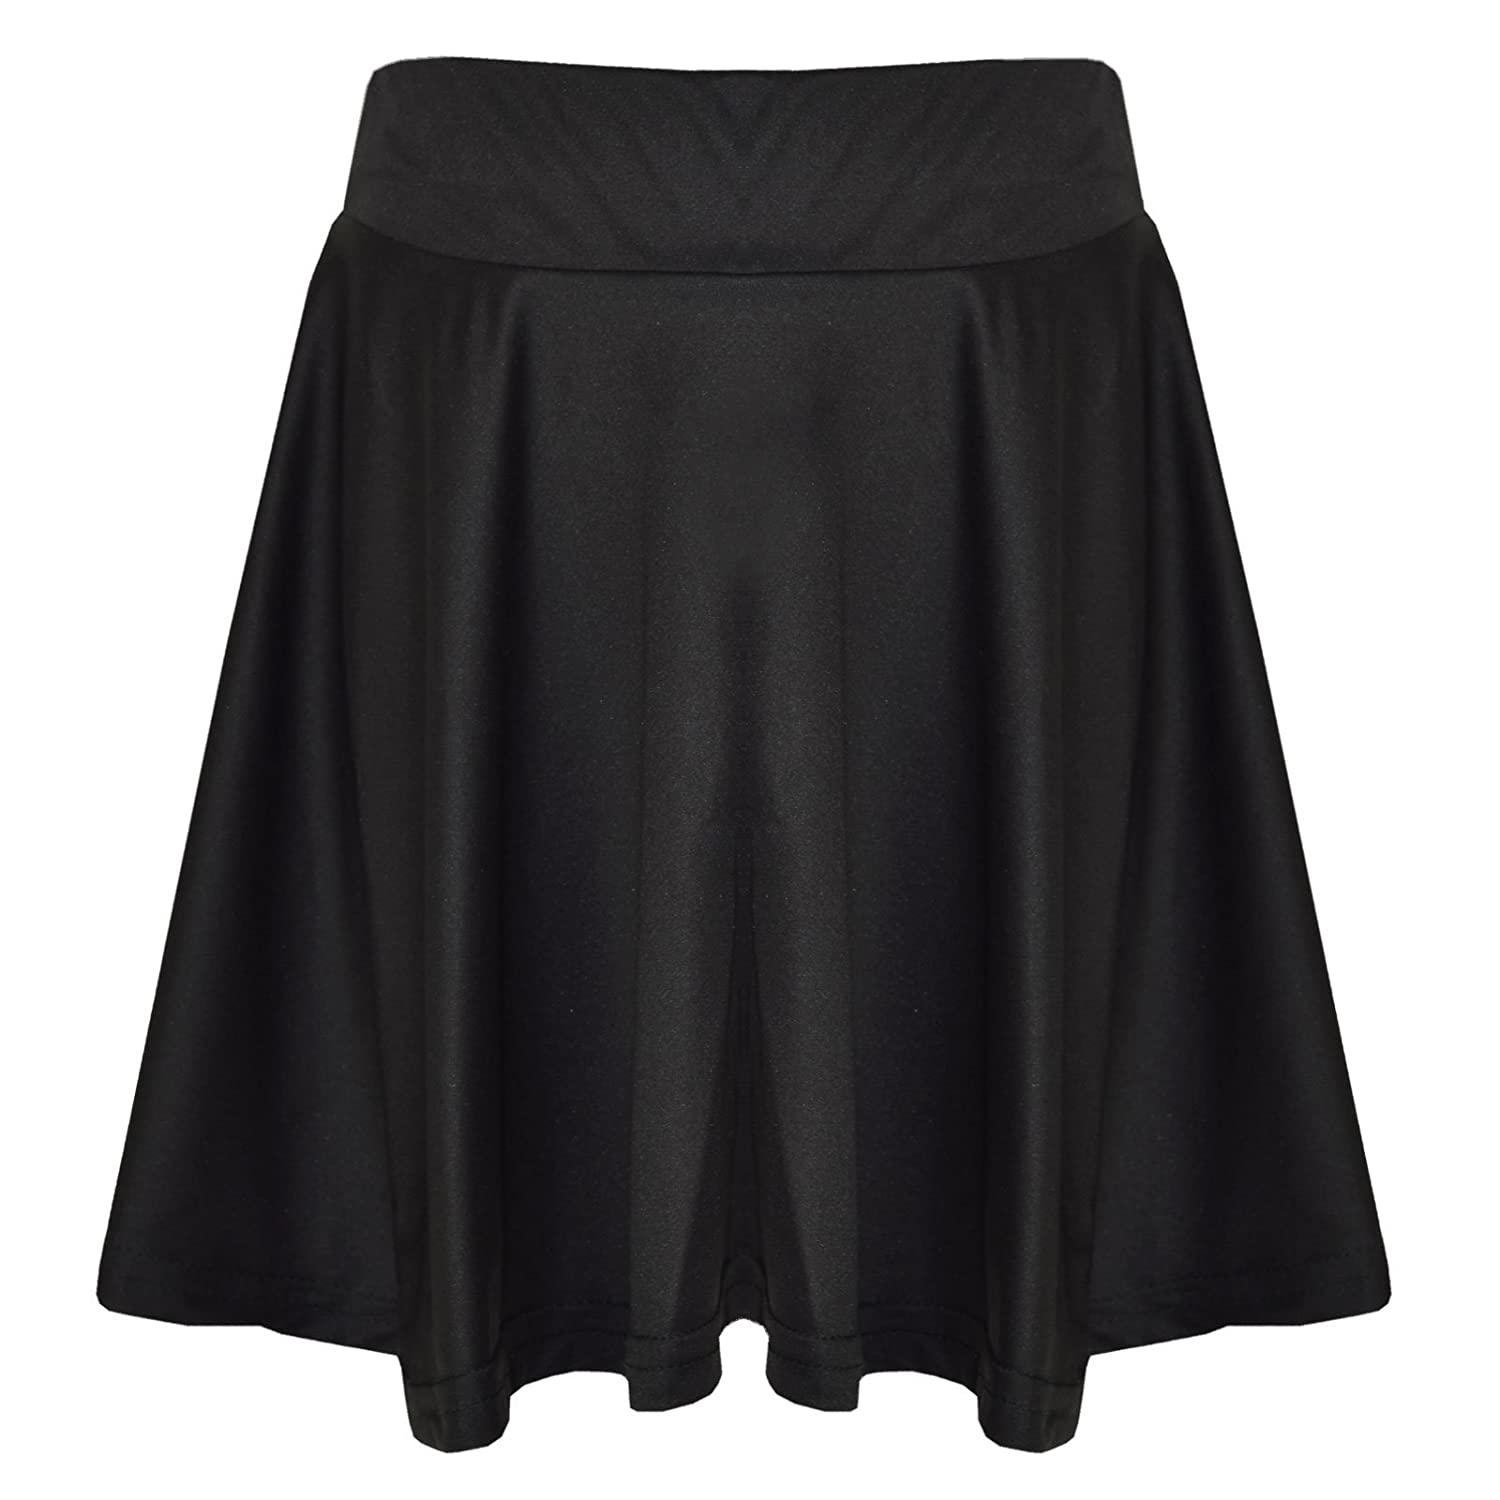 909594fef62 A2Z 4 Kids® Girls Plain Color School Fashion Dance Skater Skirts. A2Z 4 Kids®  Is Our Trade Mark, It Is Exclusive To Our Amazon Shop Only.